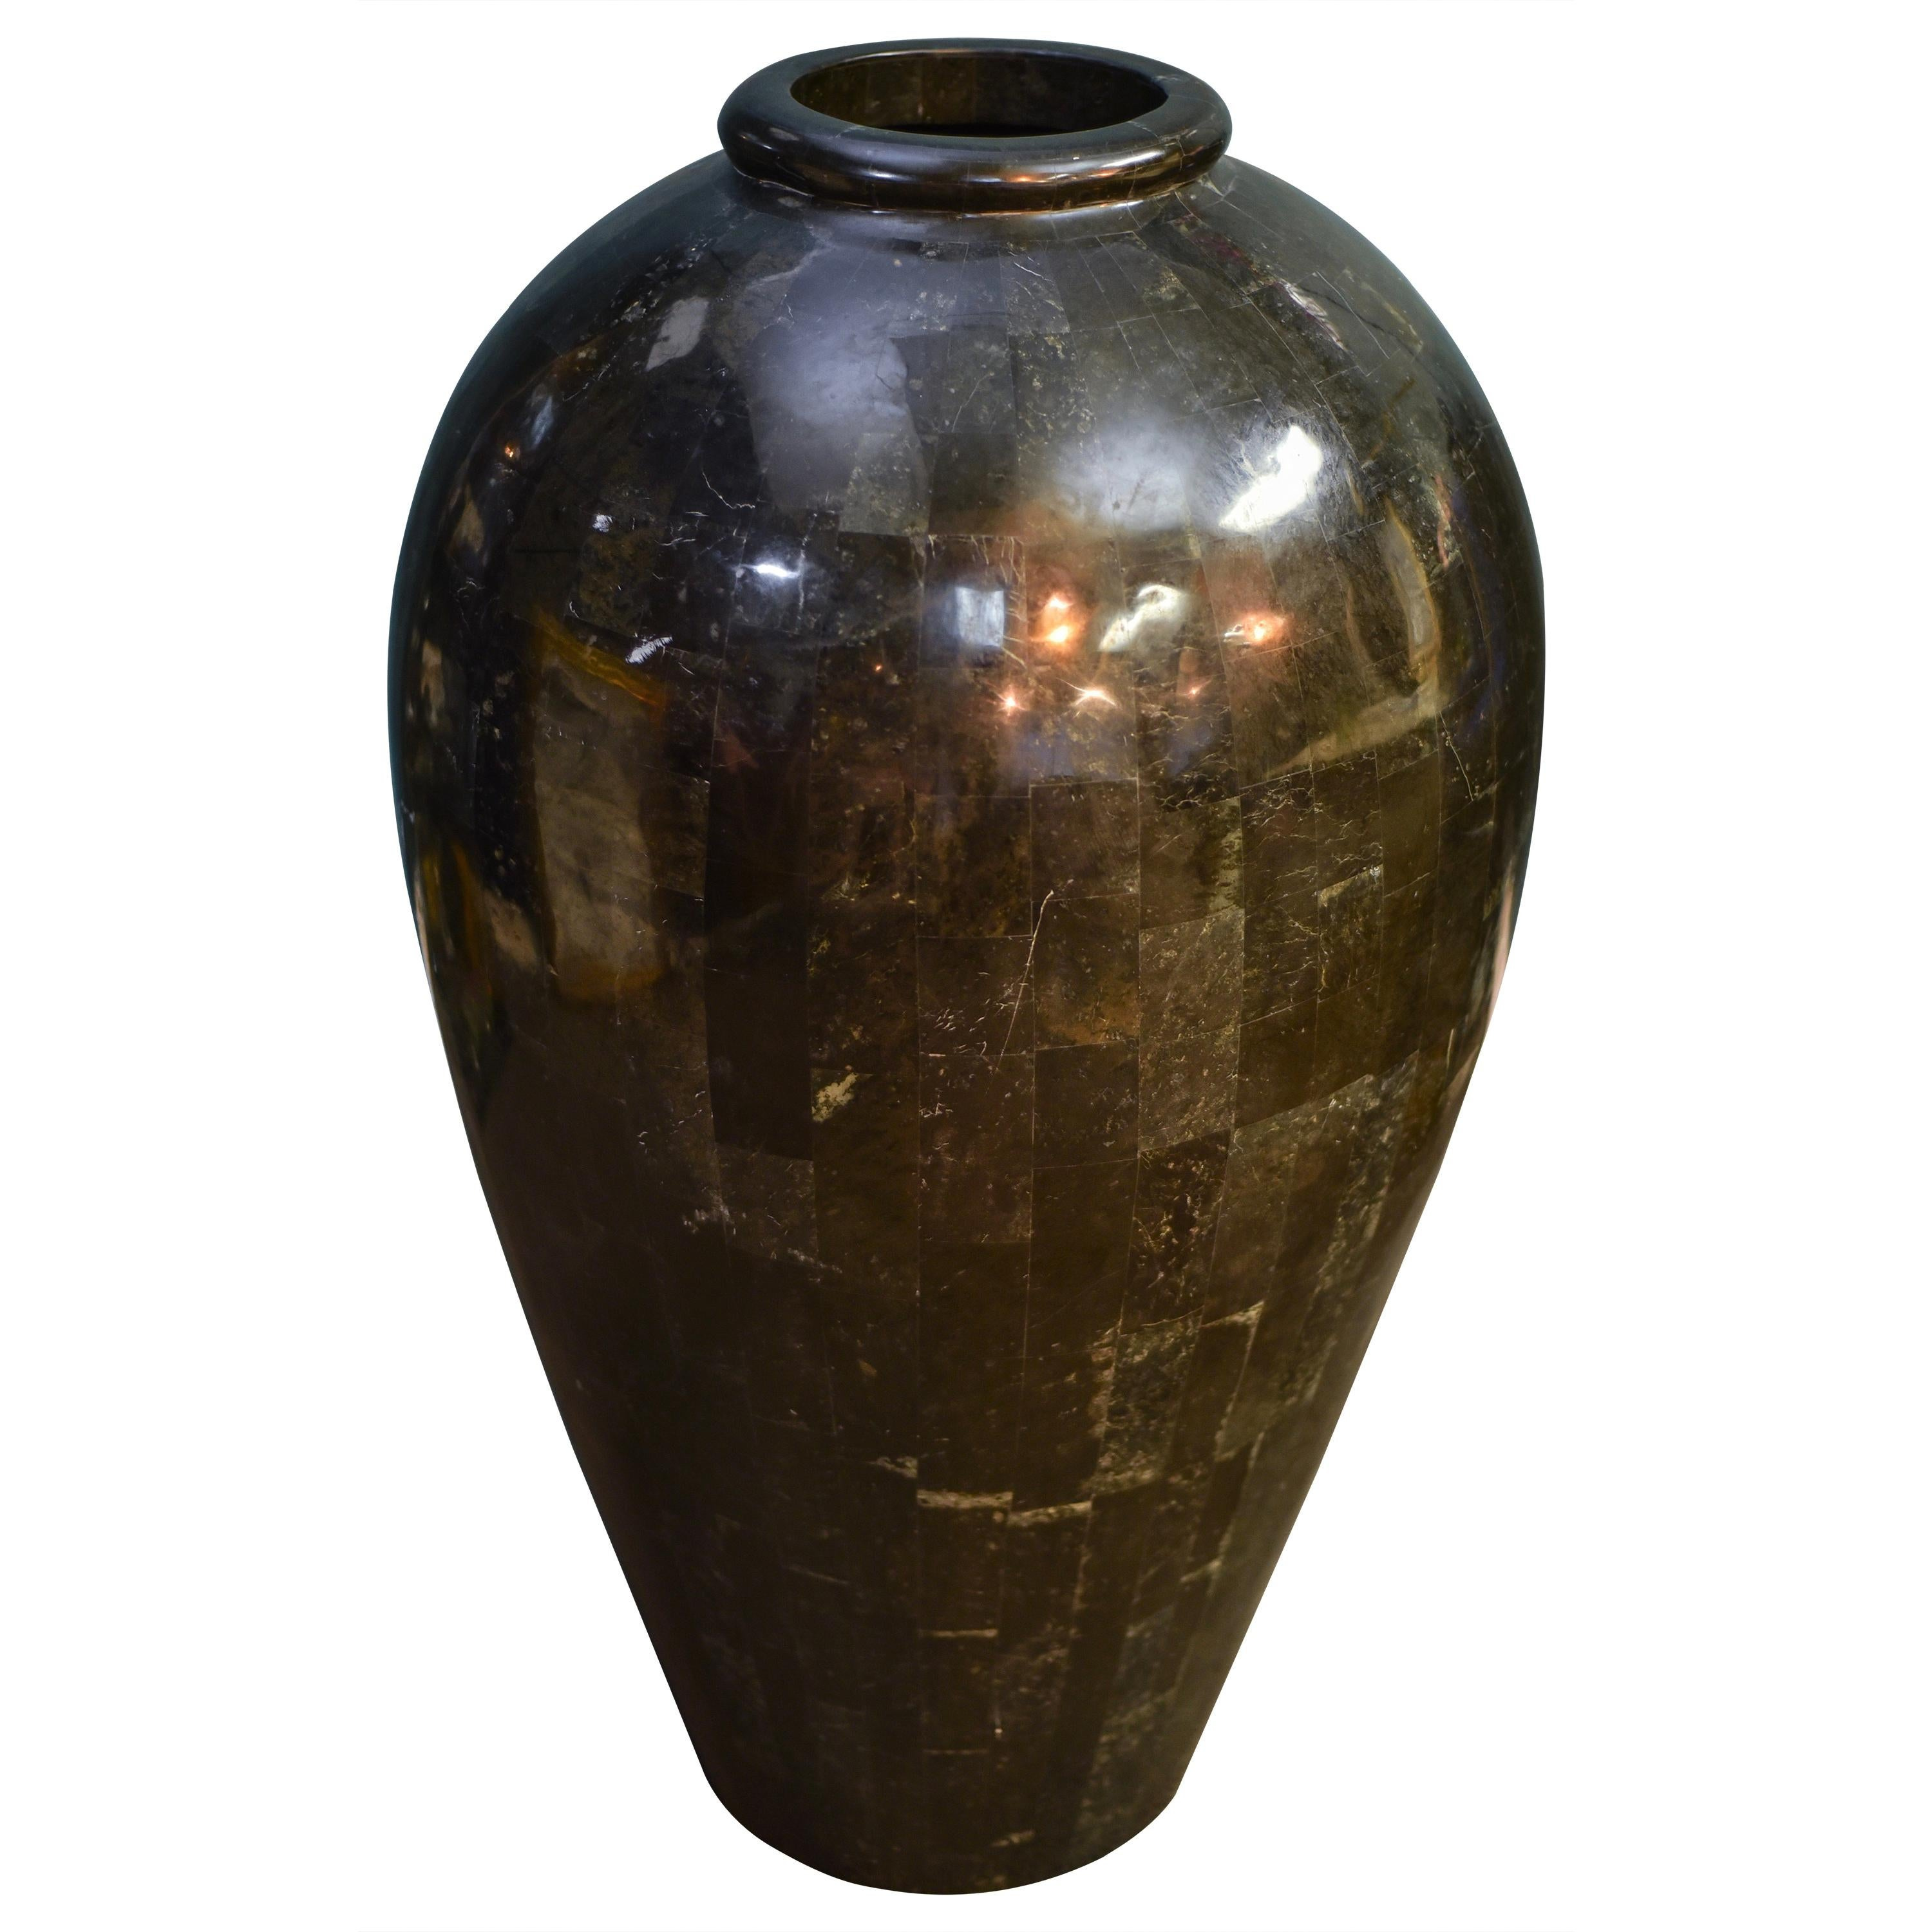 Stunning Monumental Tessellated Stone Vase by Maitland Smith, 1980s